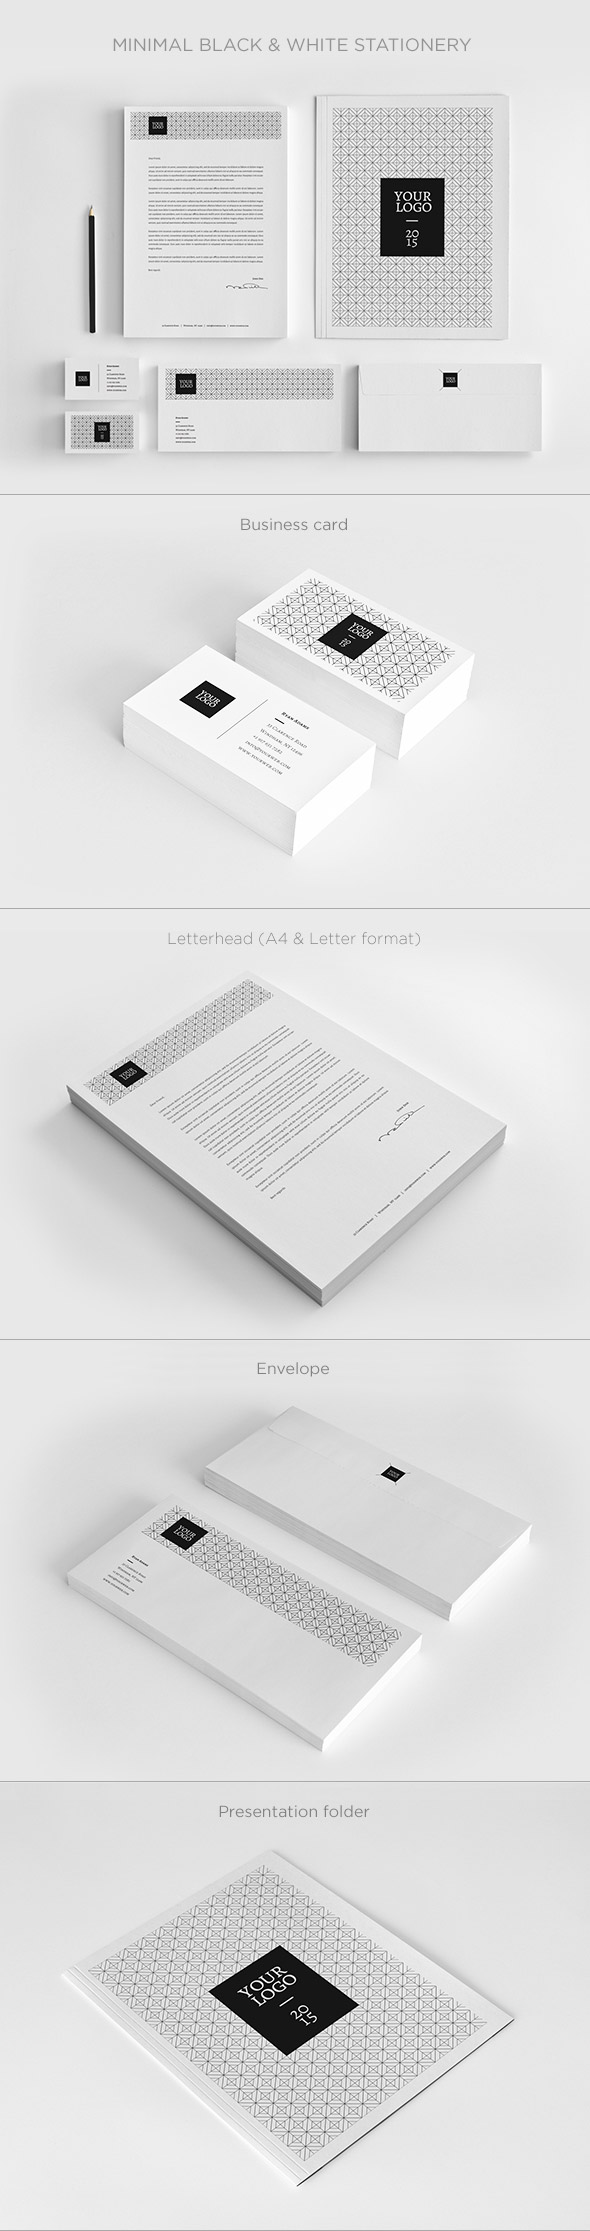 Minimal Black and White Stationery Set